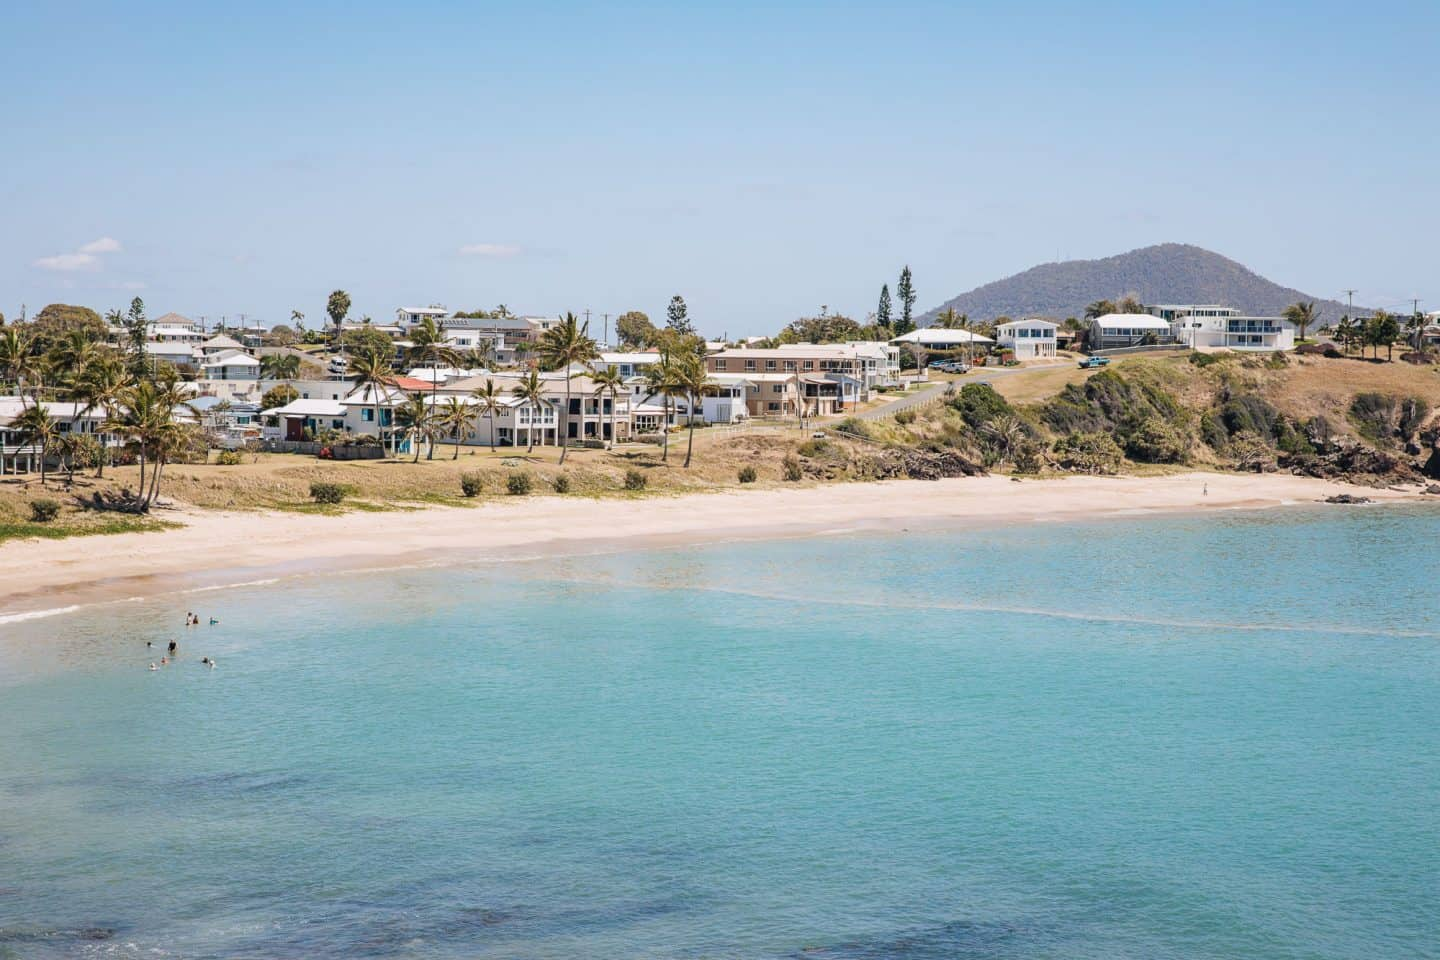 yeppoon beaches, beaches yeppoon, best beaches in yeppoon, beaches in yeppoon, cooee bay